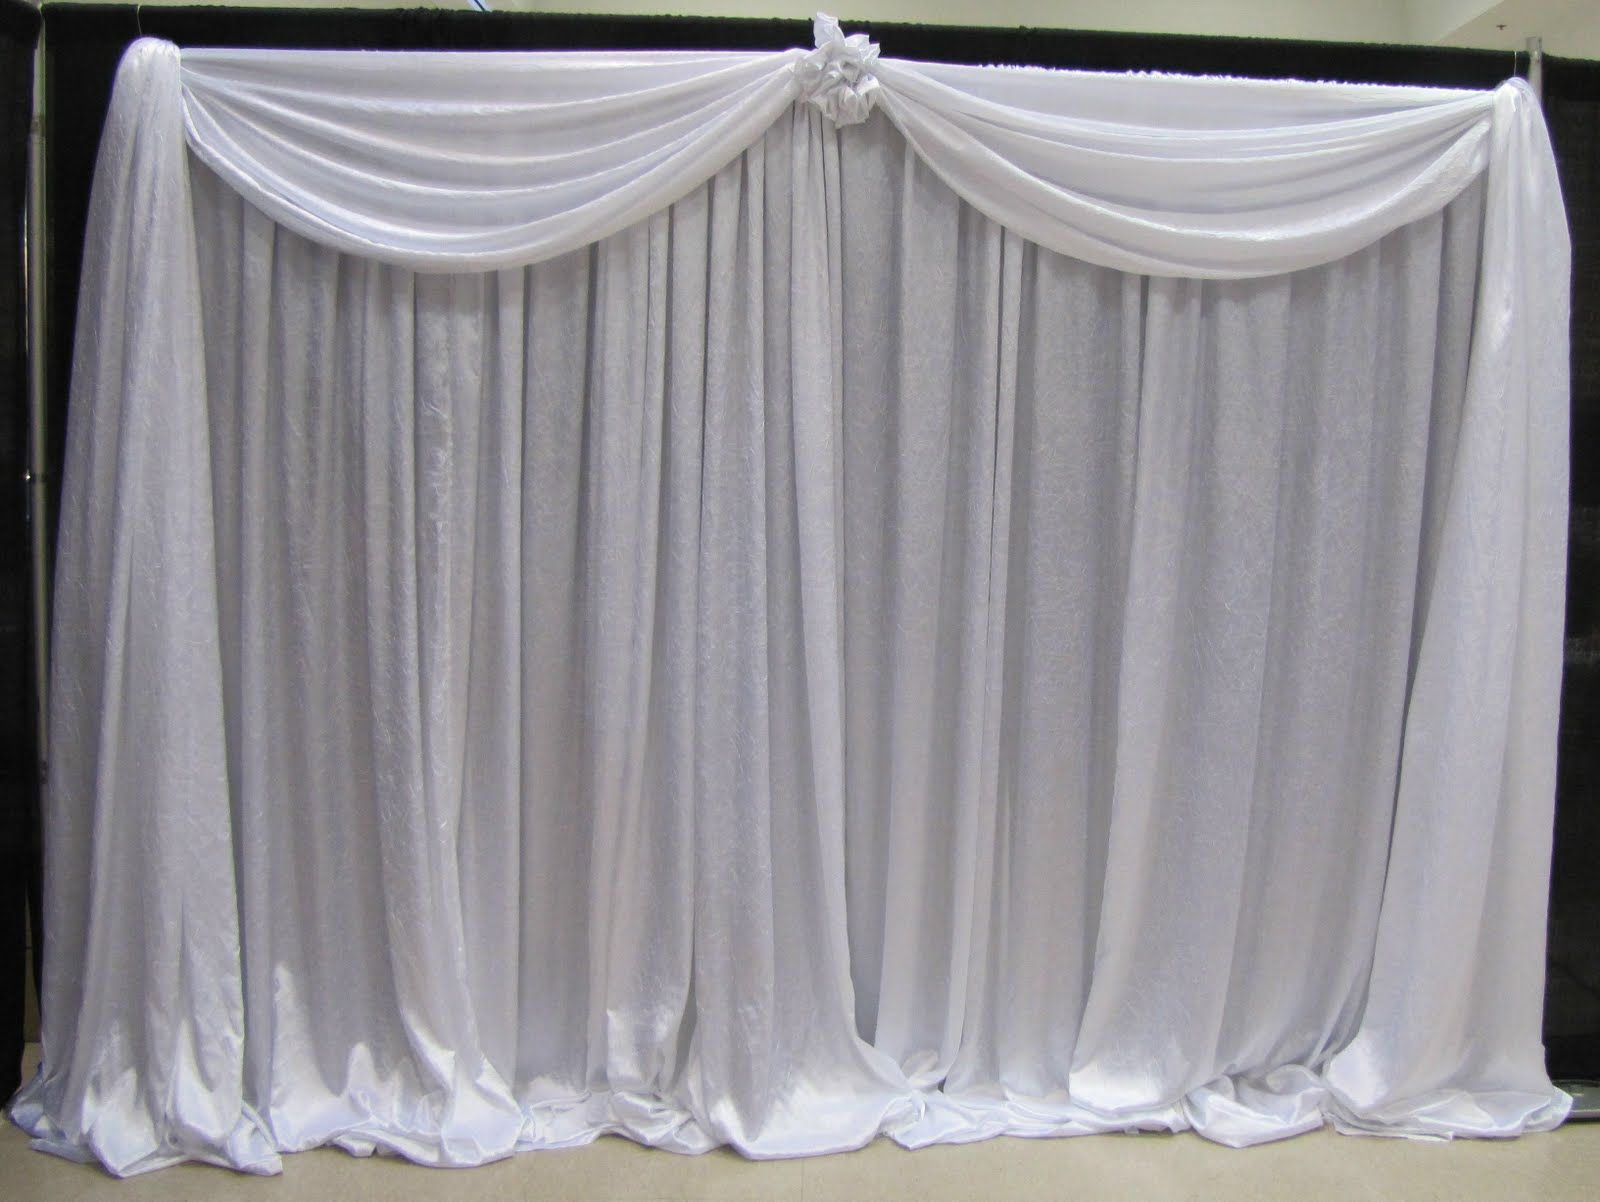 drapes alternatives wedding used product pipe competitive for drape supplies sets stand stage and decoration backdrop poles store events portable